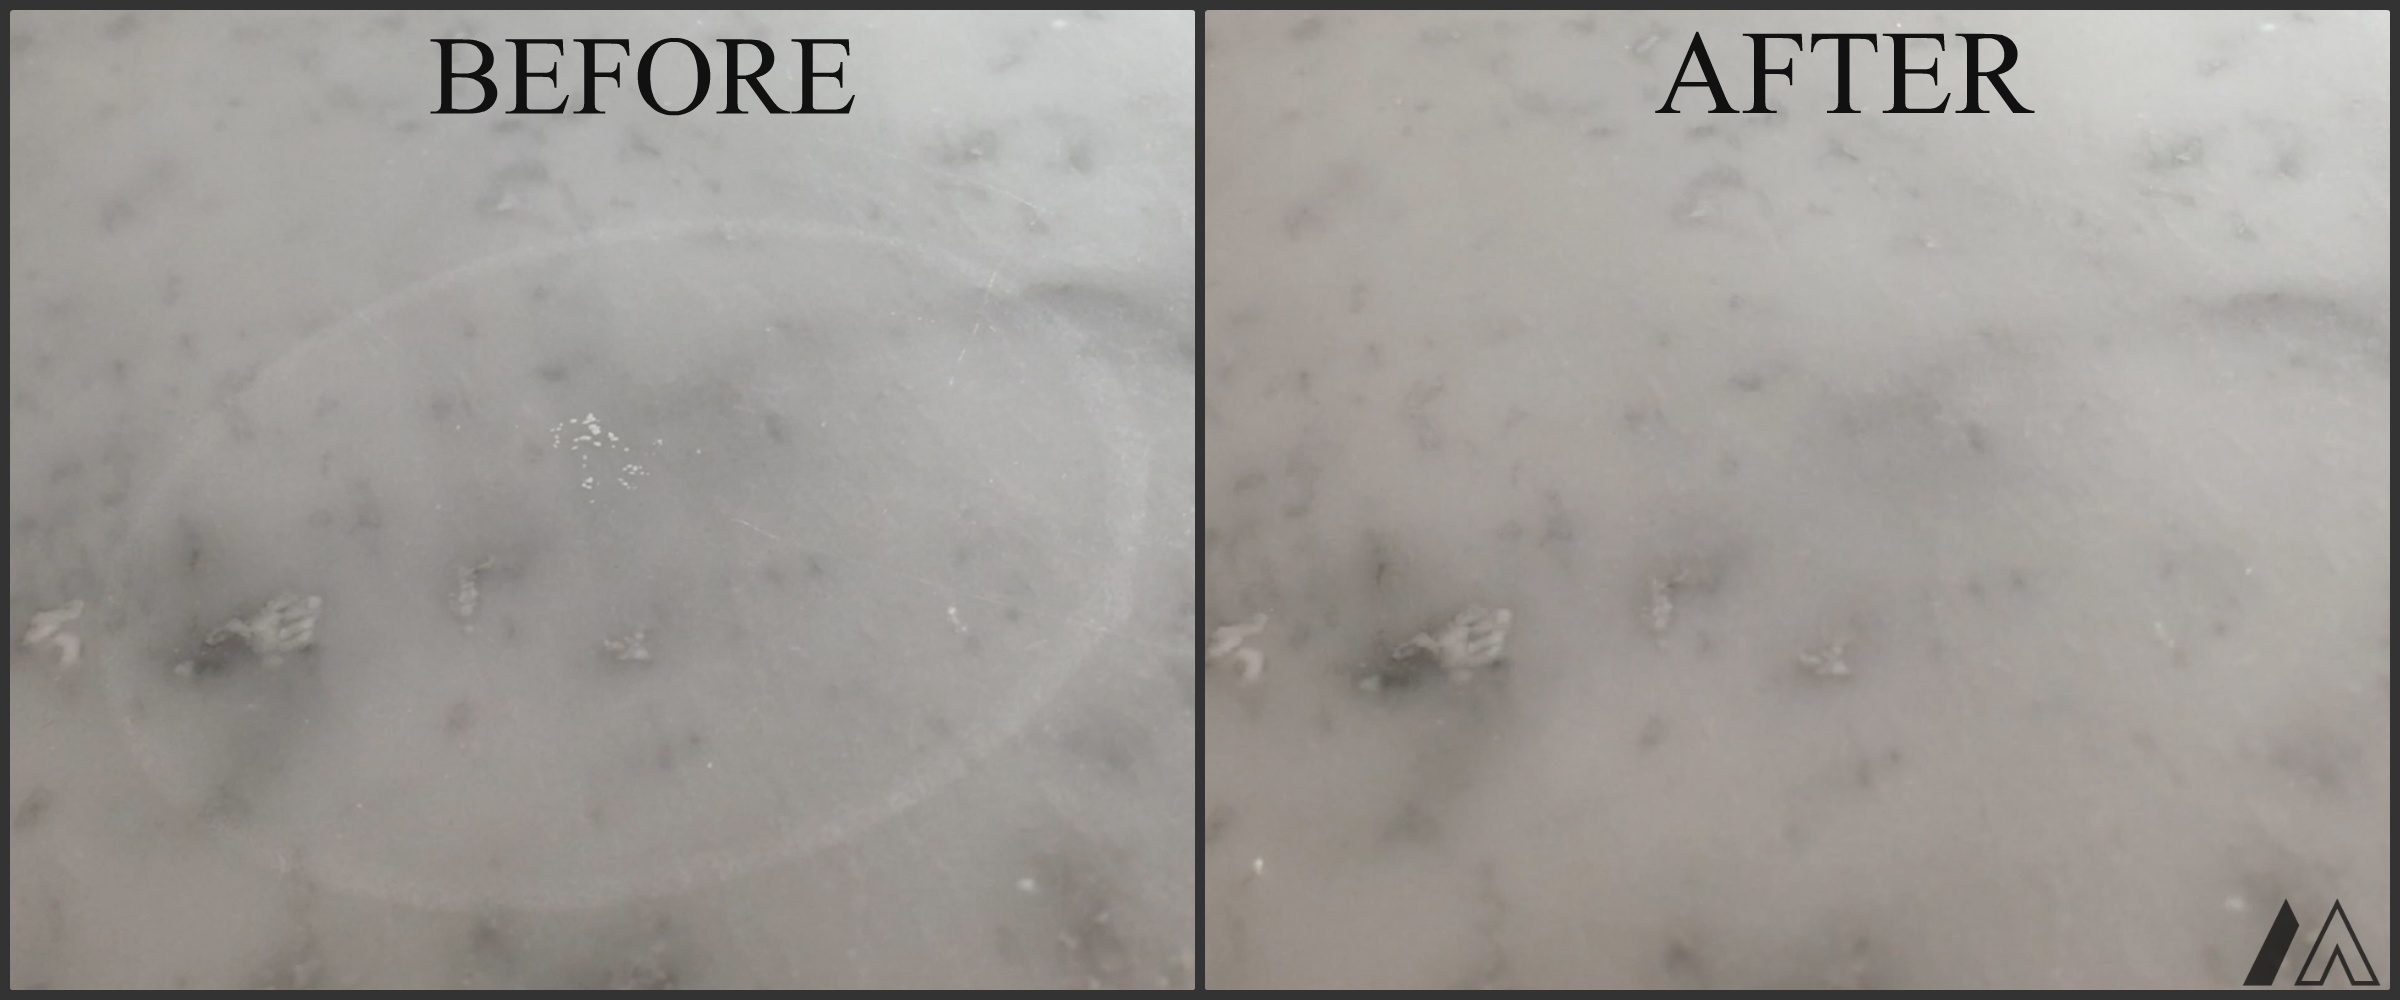 How To Remove Stains From Bathroom Countertops The Easy Way To How To Remove Marble Etching The Marble